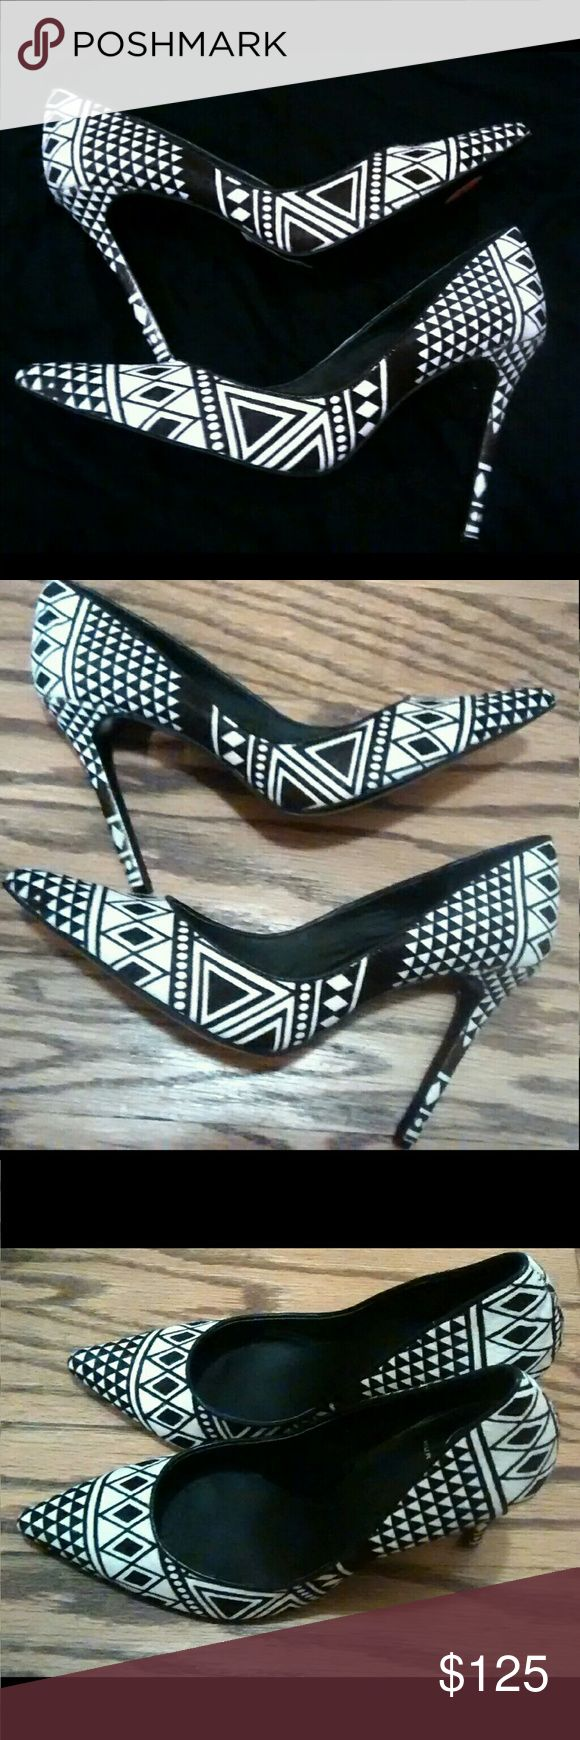 Kurt Geiger Black White Geometric Aztec Pumps 40 9 Worn but in excellent condition. No box or dustbag. Jazz up any all white or all black outfit. Kurt Geiger  Shoes Heels